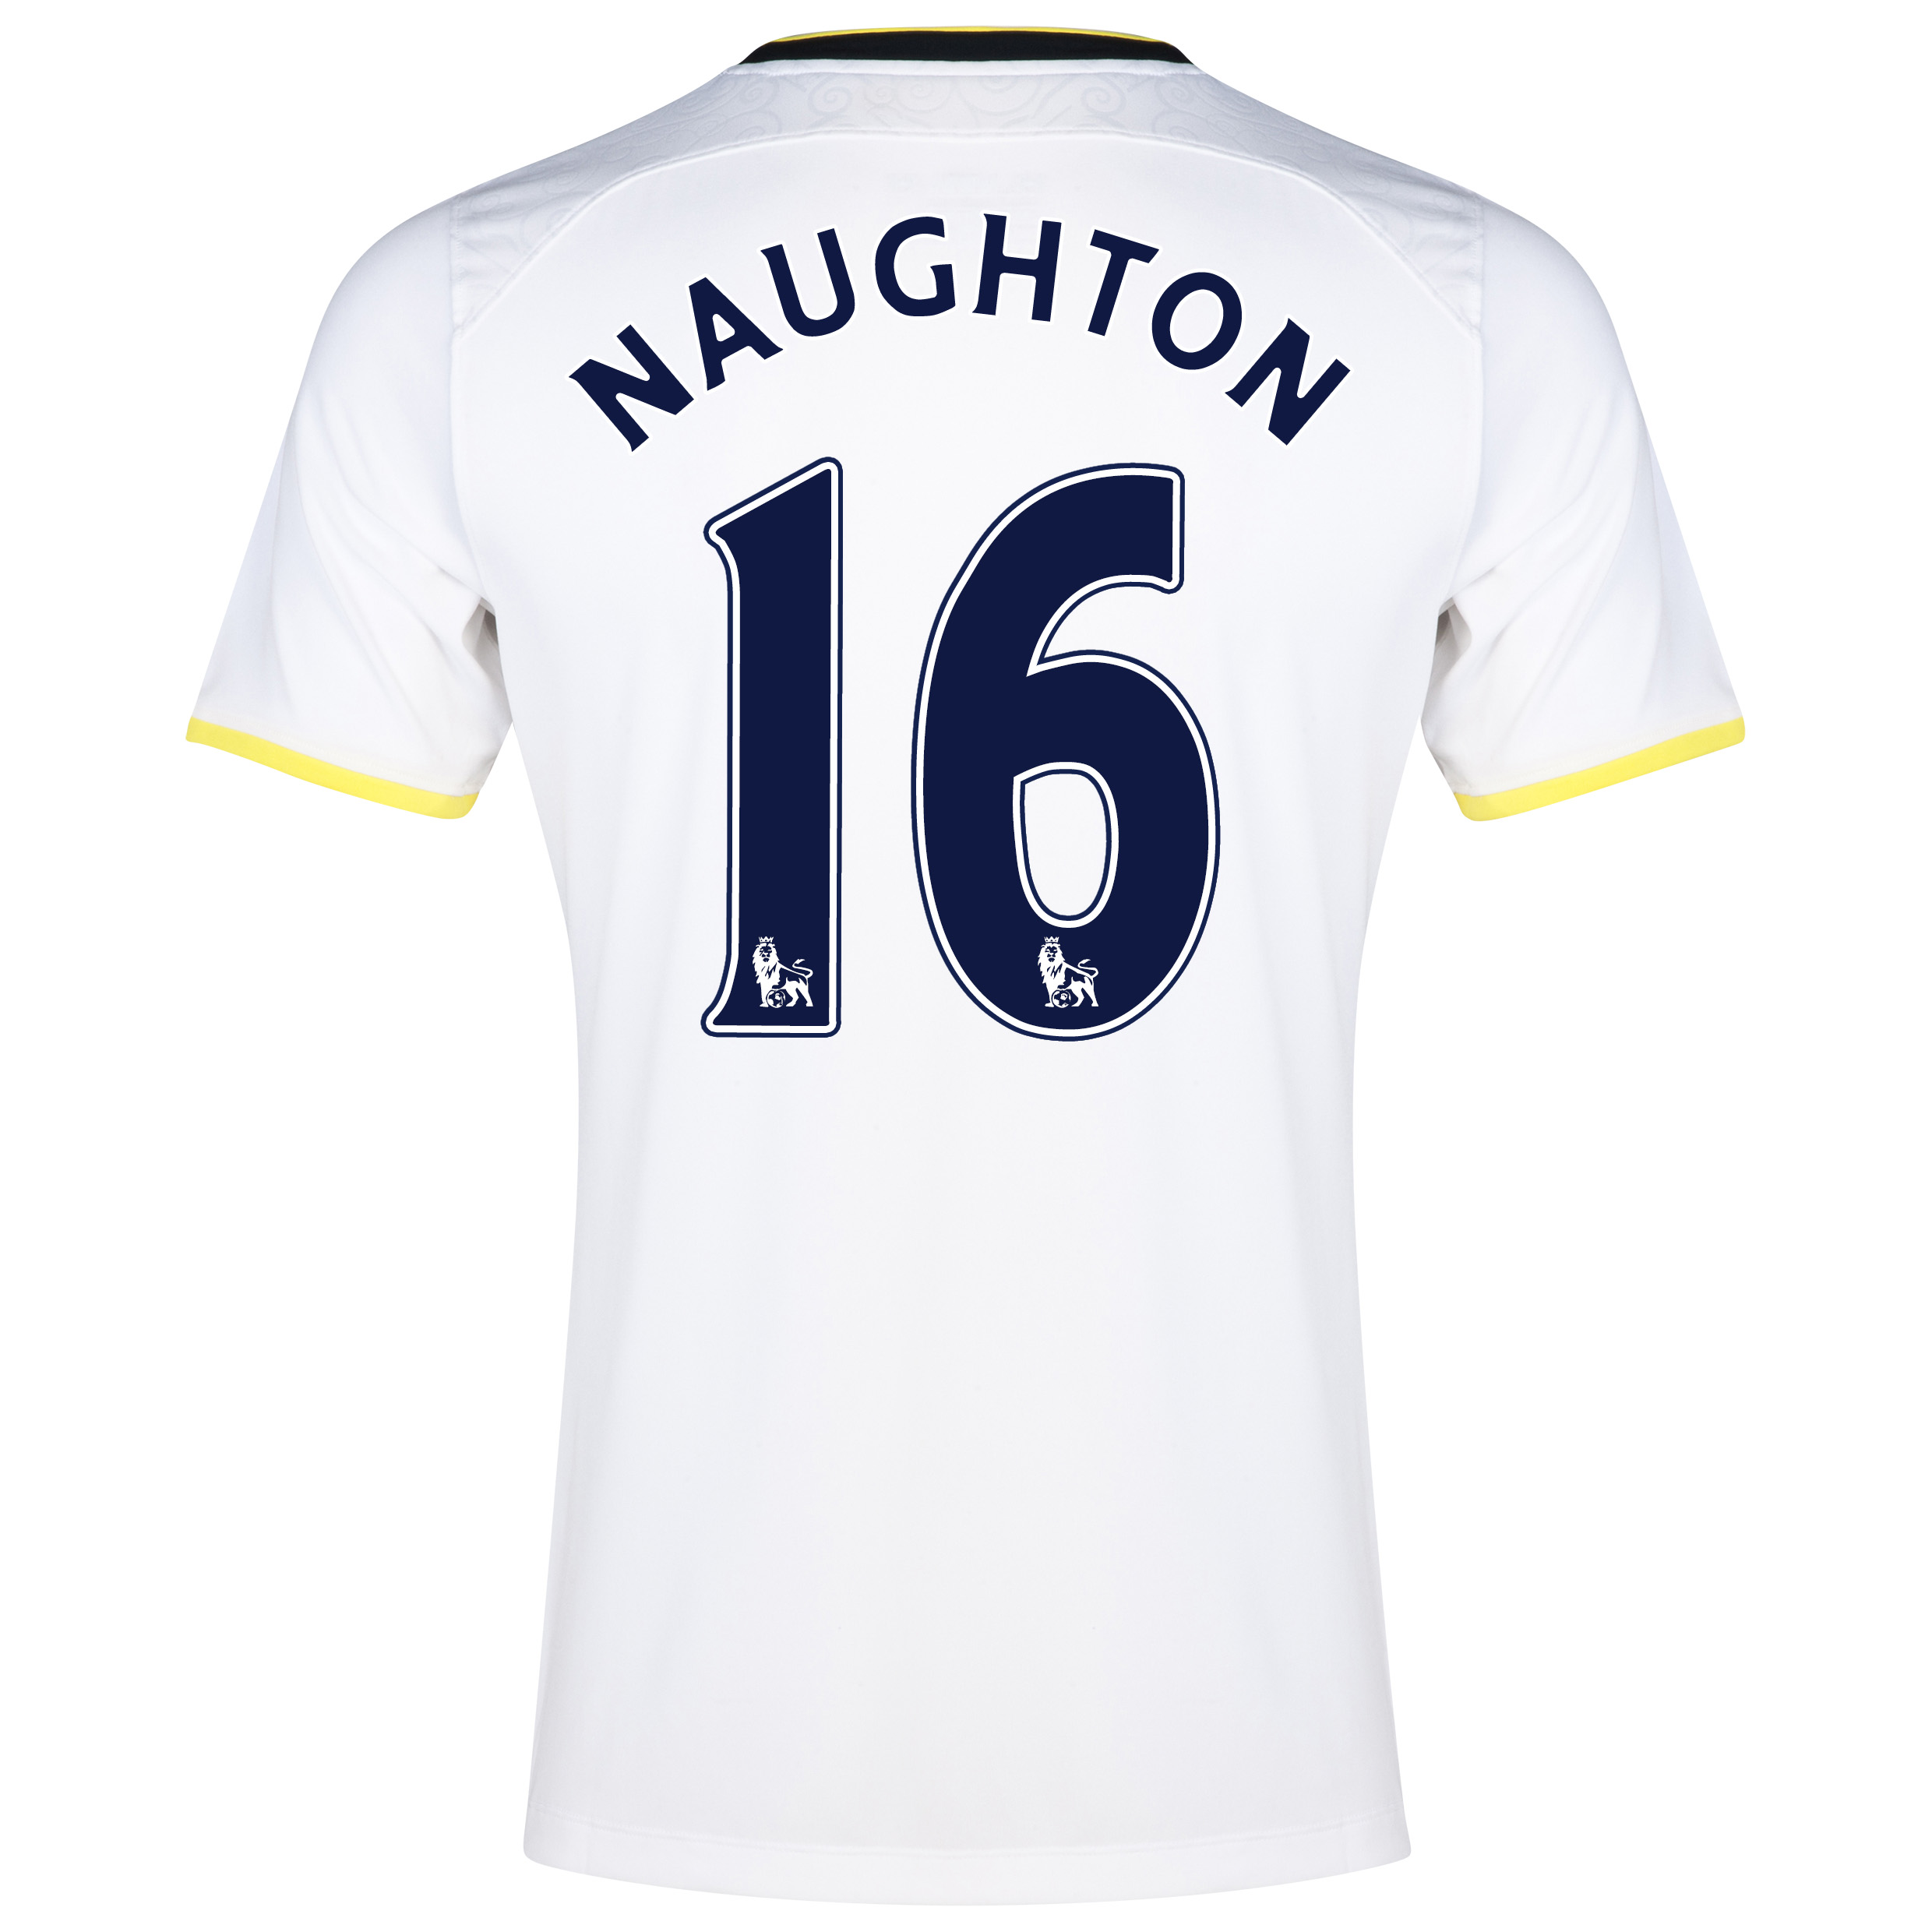 Tottenham Hotspur Home Shirt 2014/15 with Naughton 16 printing